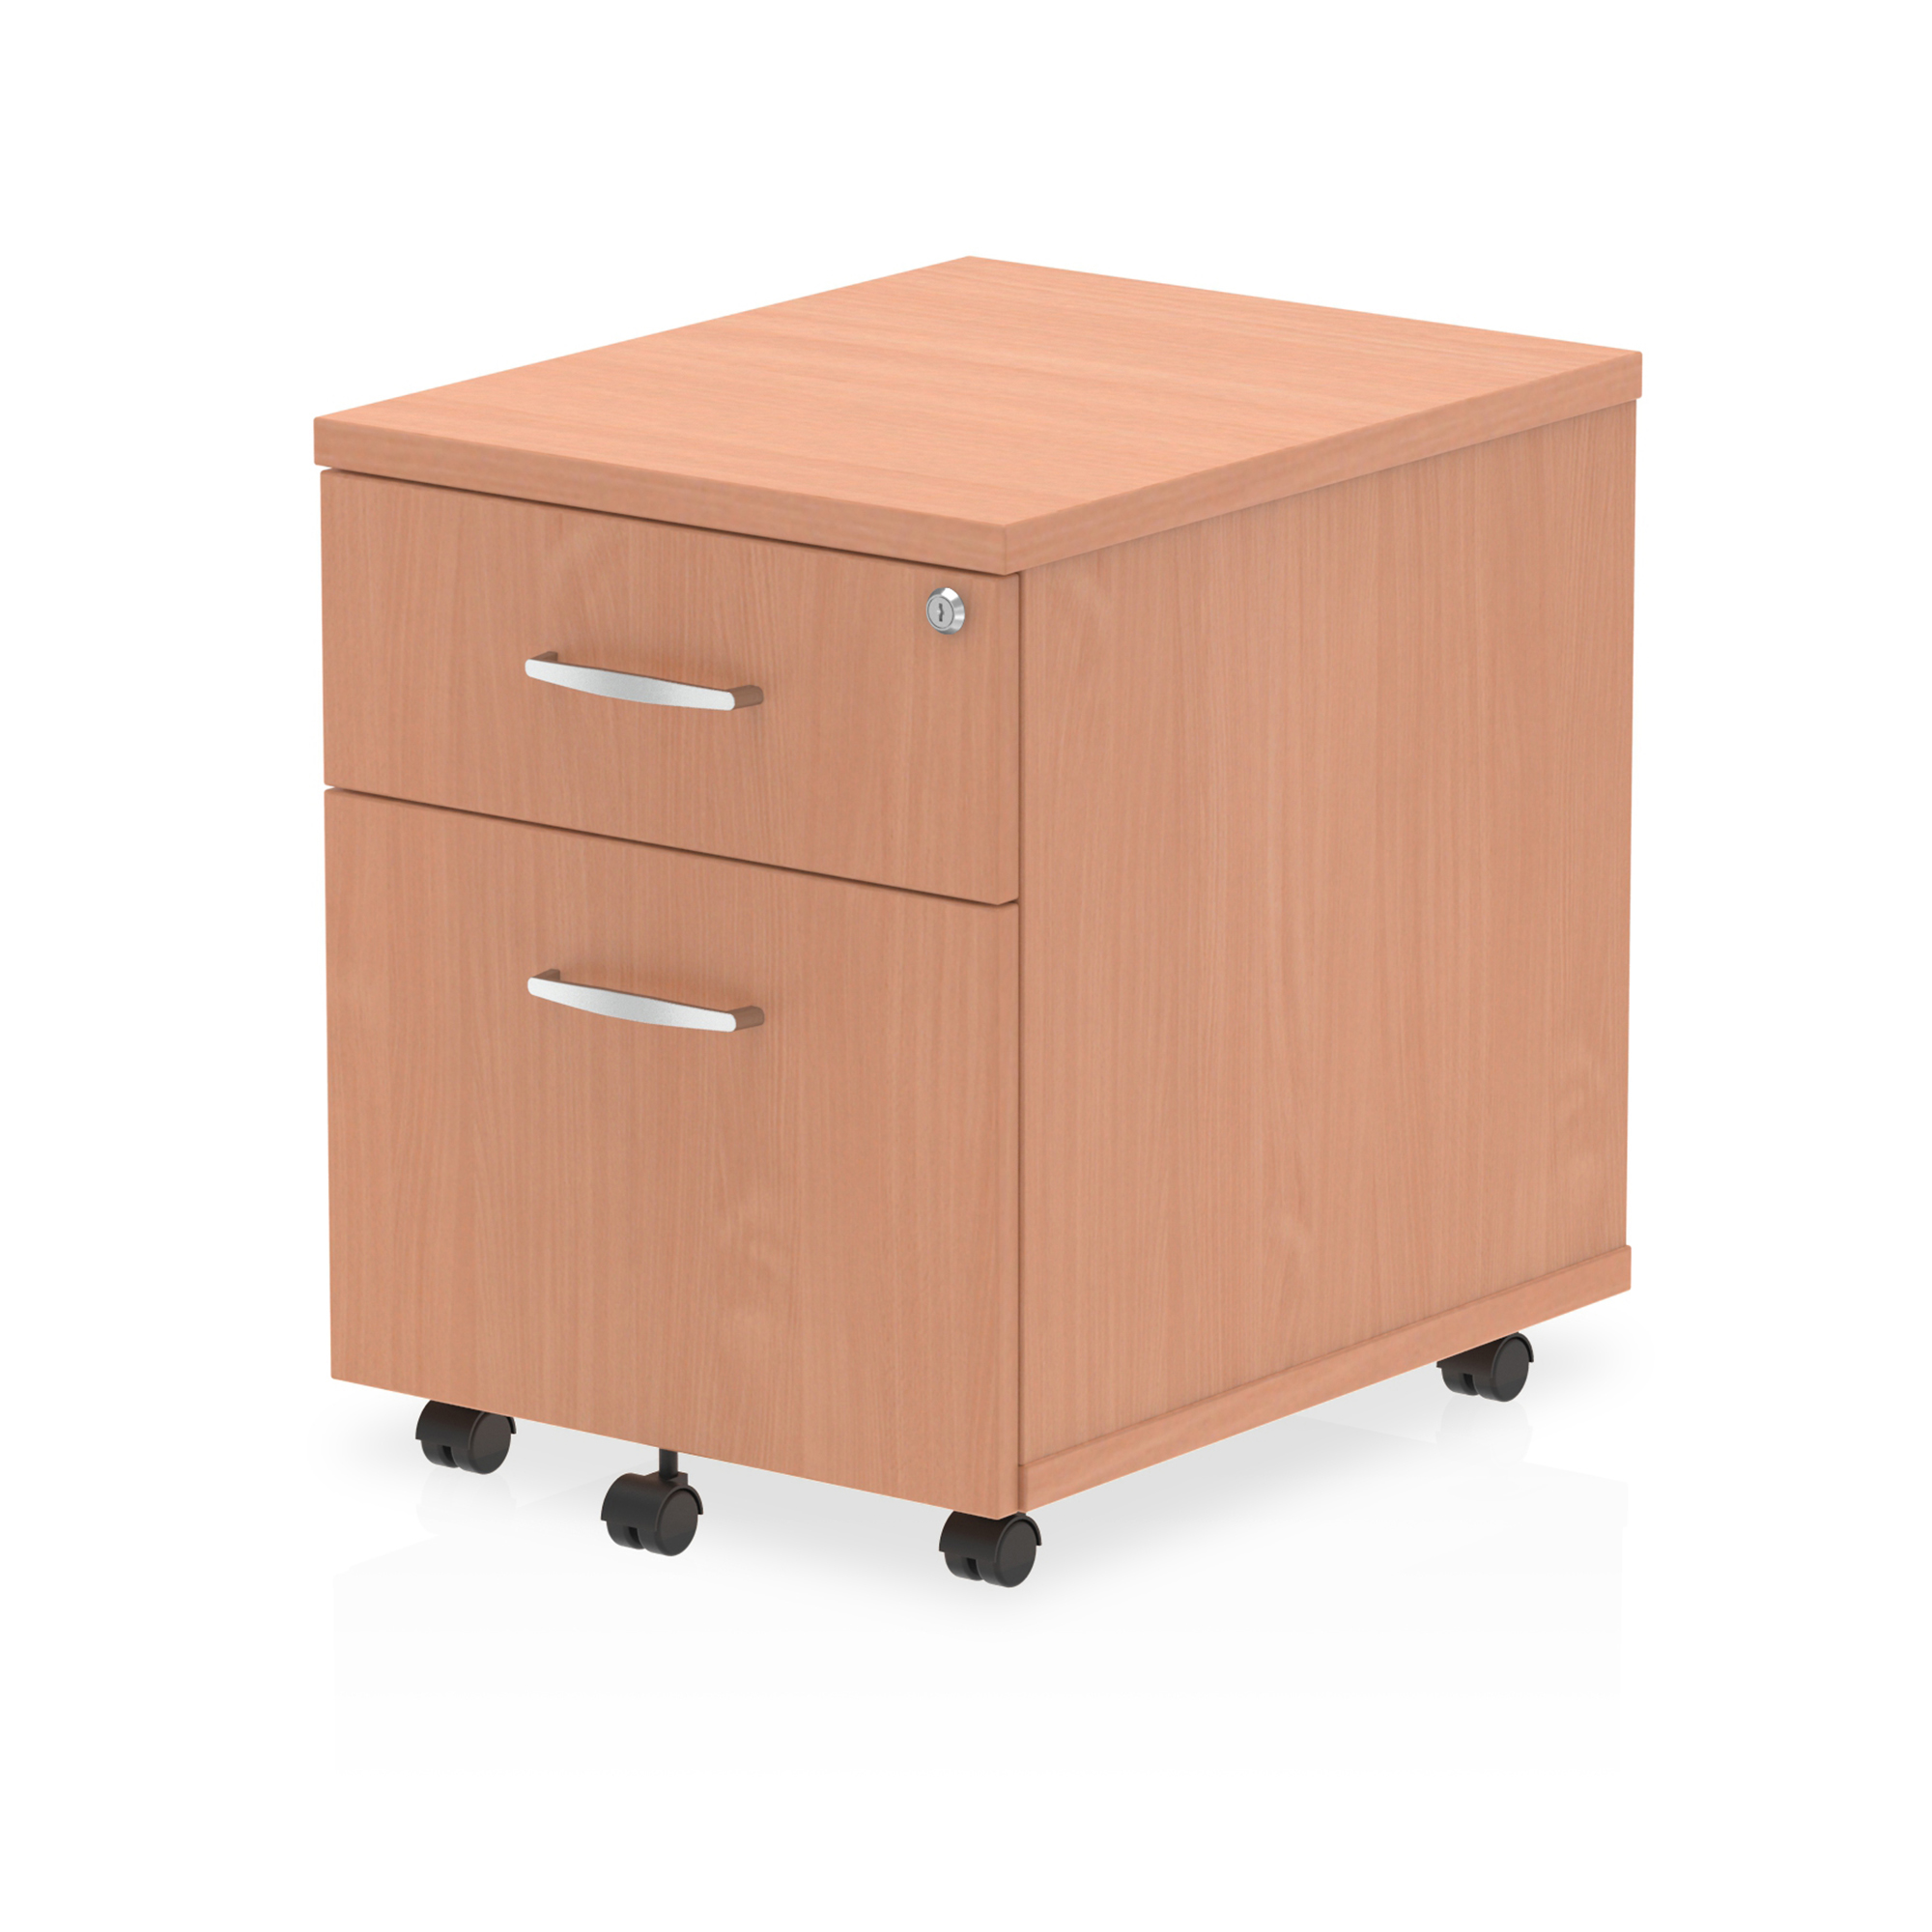 Trexus 2 Drawer Mobile Pedestal 430x500x510mm Beech Ref I000064